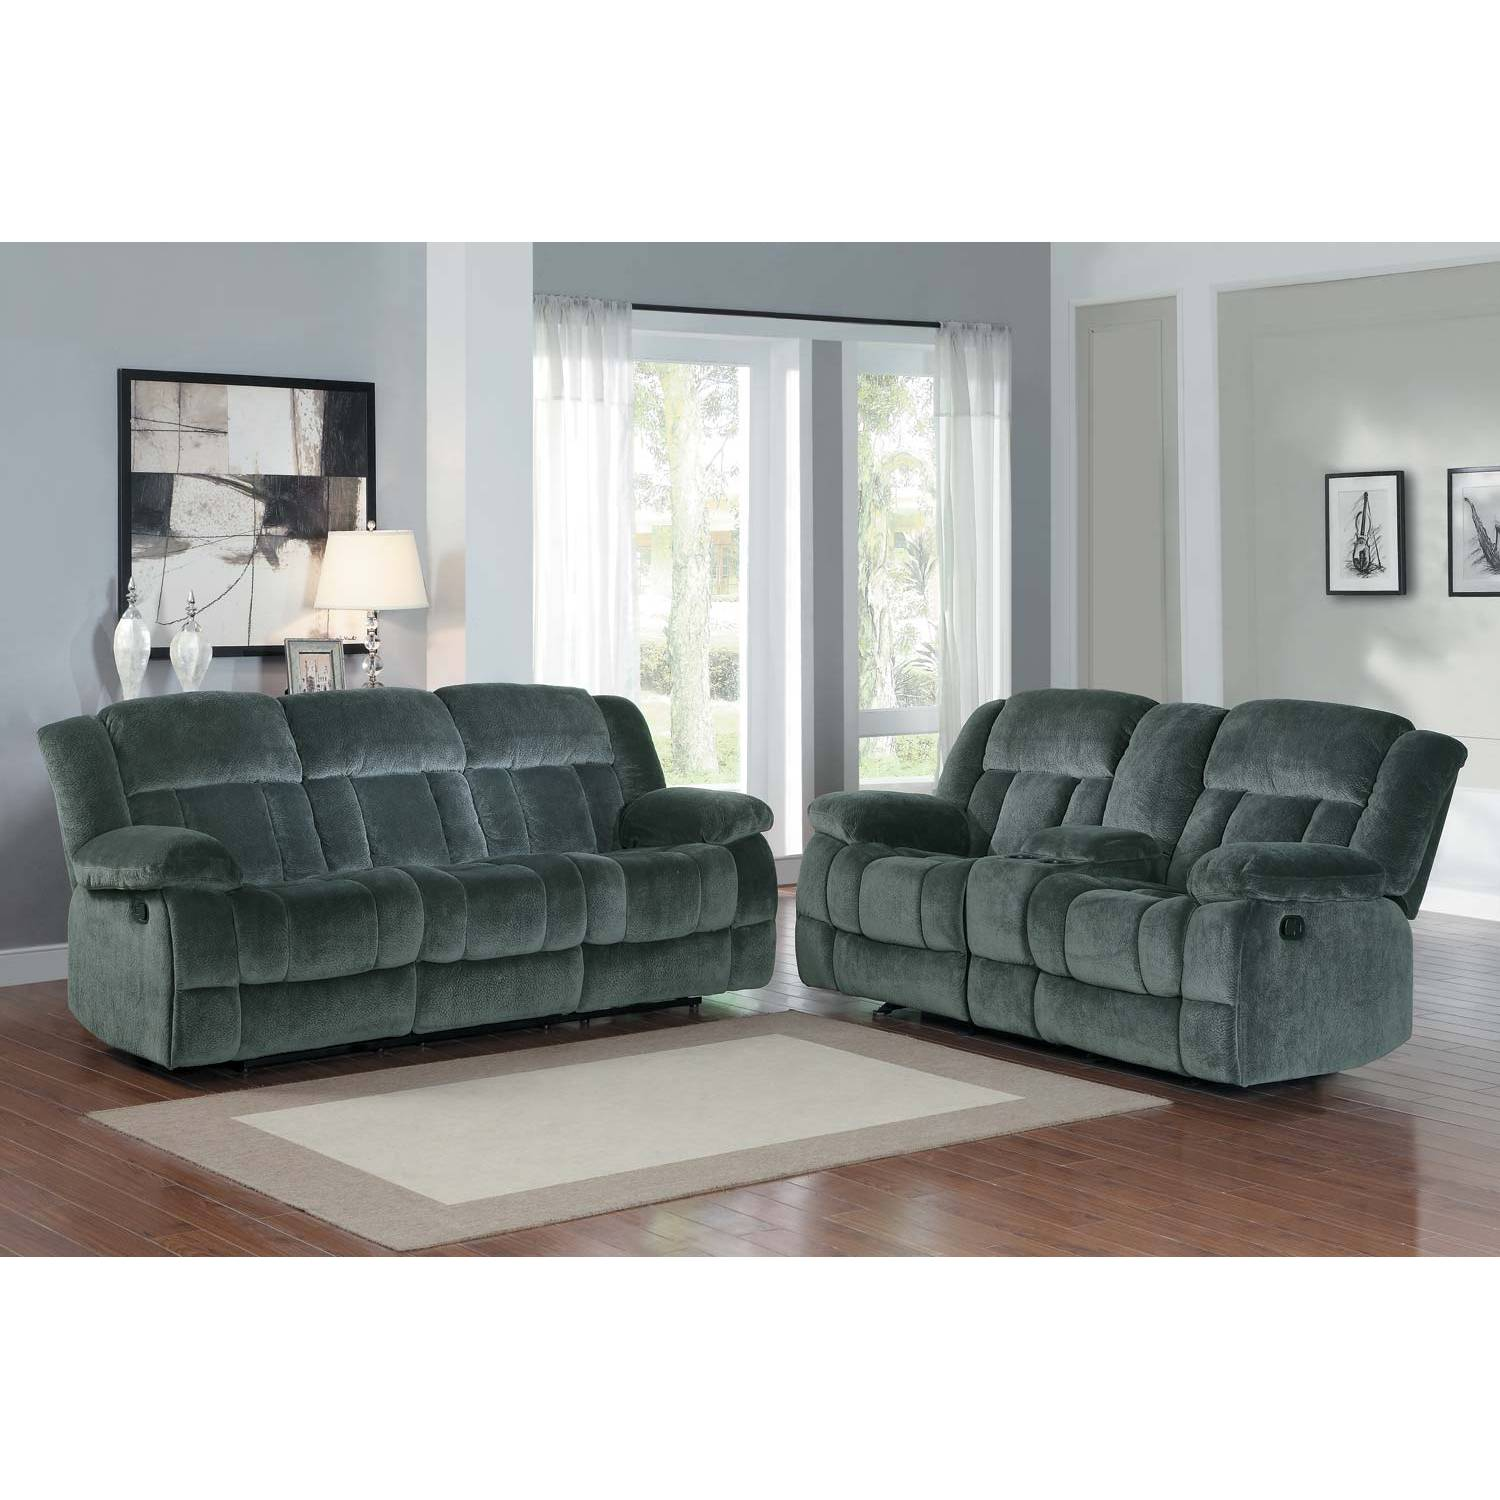 2pc Laurelton Reclining Sofa Set - Charcoal - Textured Plush Microfiber 9636CC Homelegance  sc 1 st  furnituredirects2u.com & Laurelton Reclining Sofa Set - Charcoal - Textured Plush ... islam-shia.org